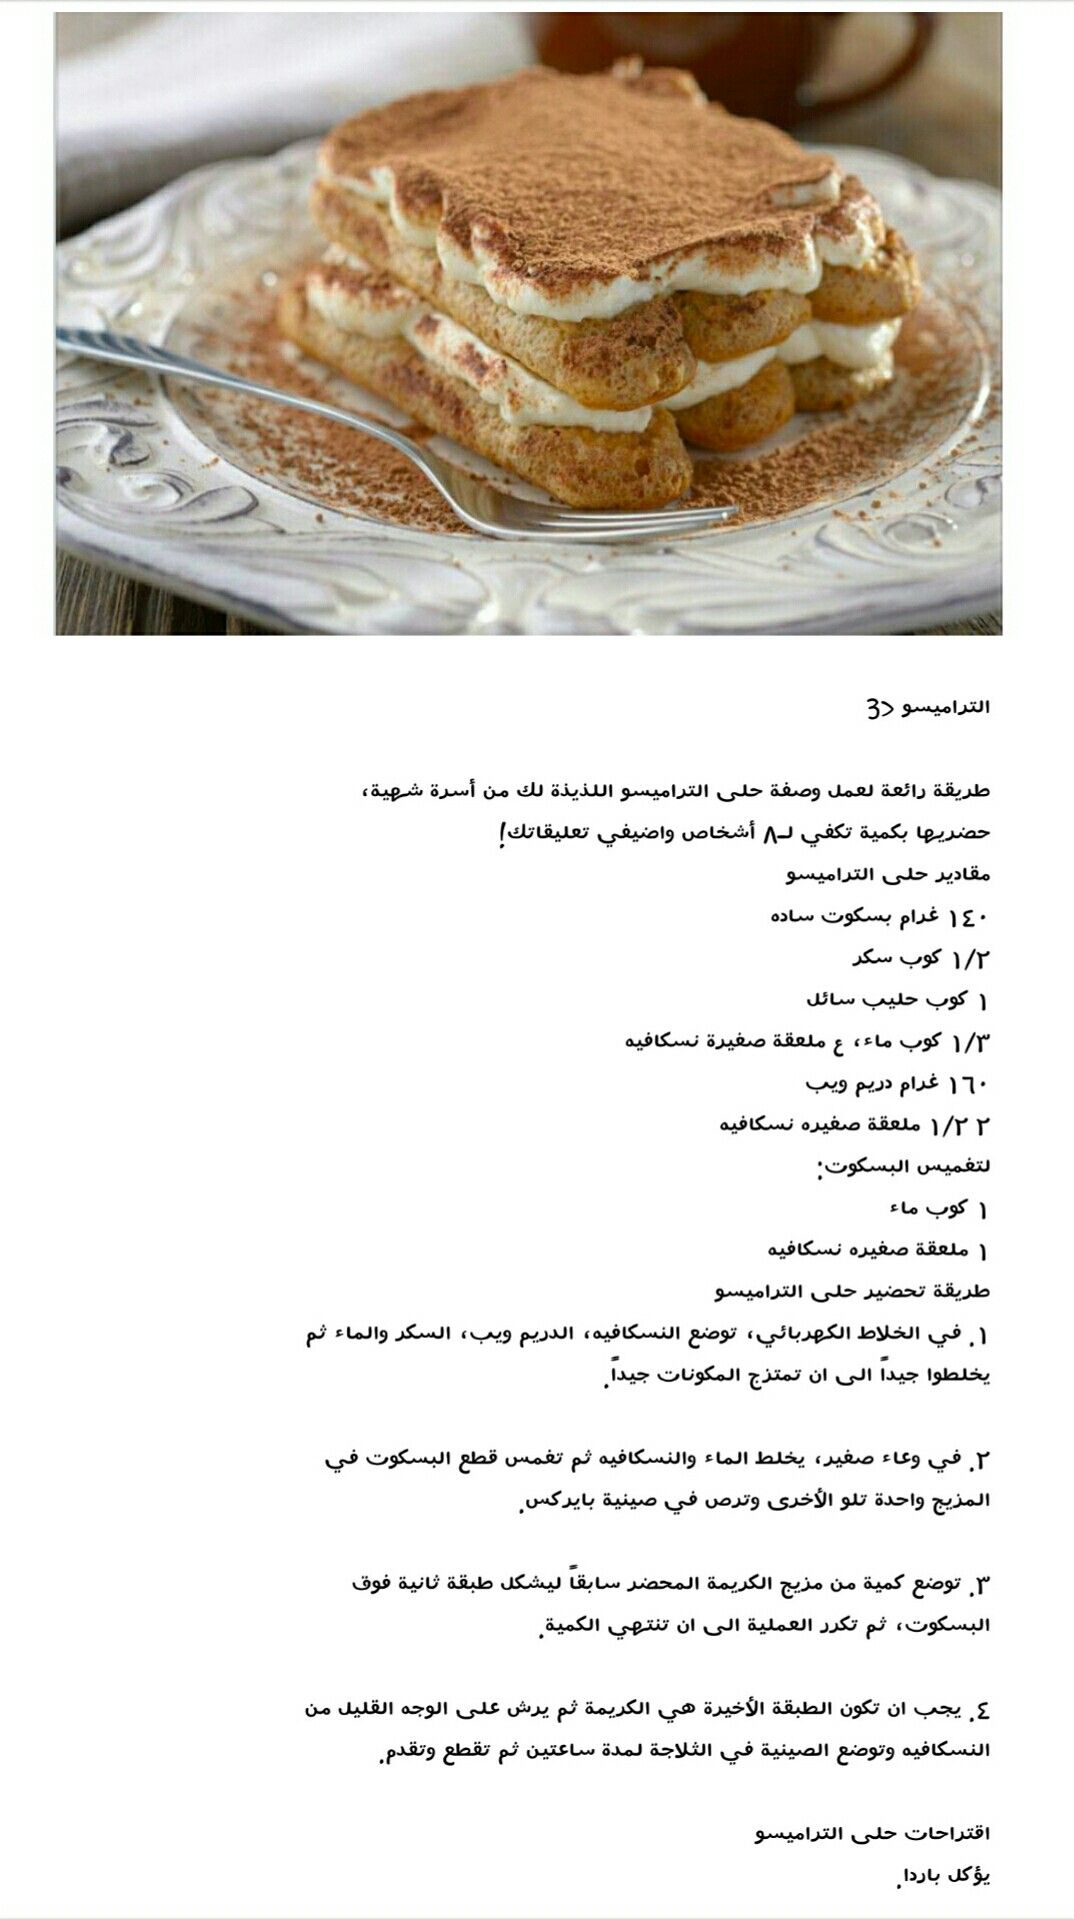 Pin By Hayam Elzwi On Cooking Cooking Recipes Desserts Cooking Recipes Food